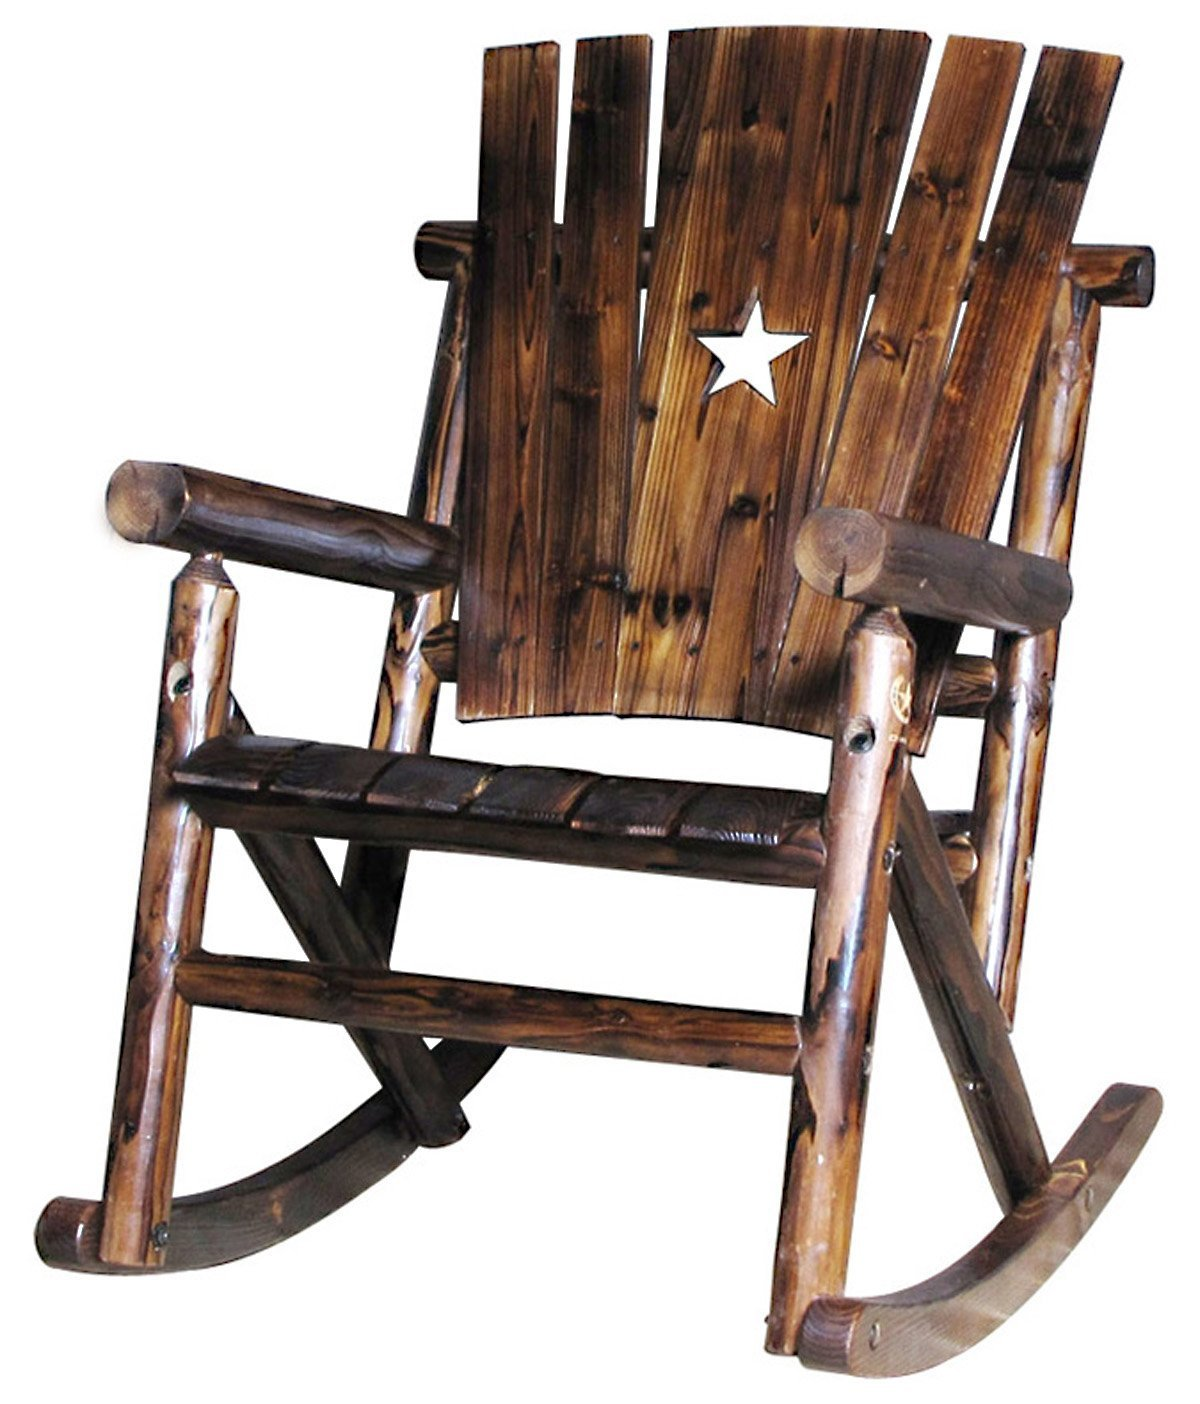 Image of: Rustic Patio Rocking Chair